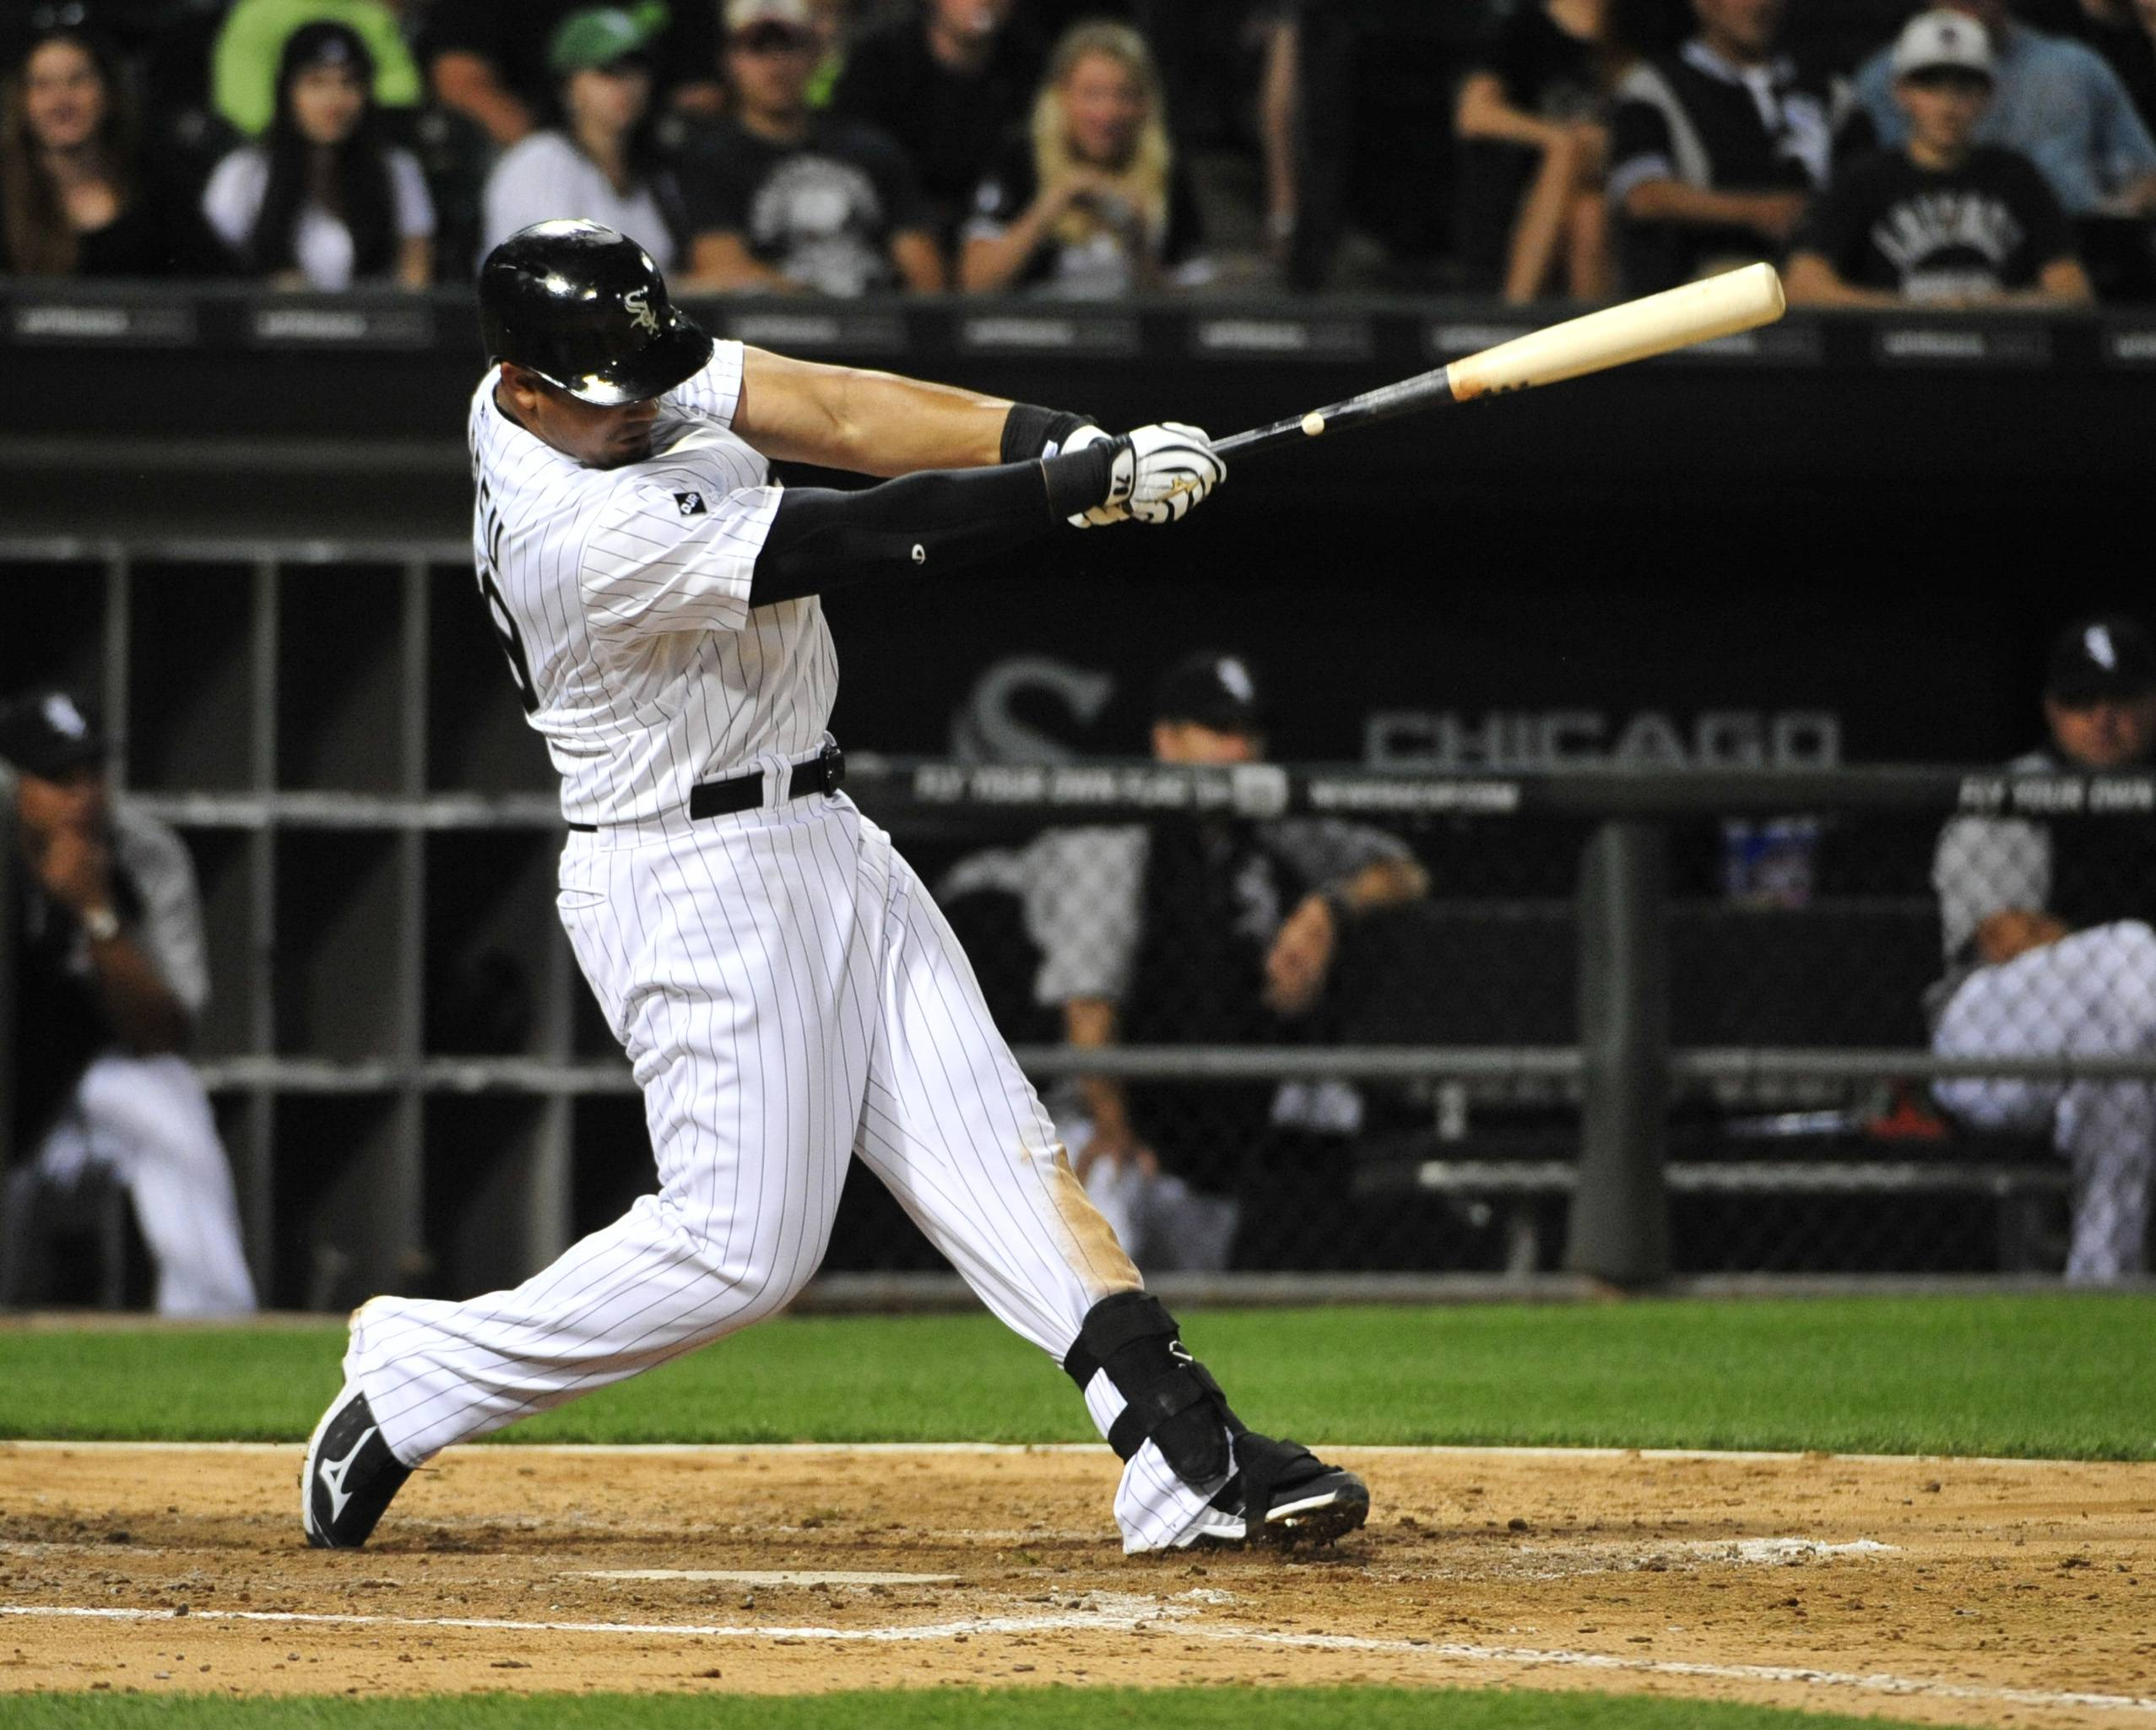 Abreu's numbers add up to awards